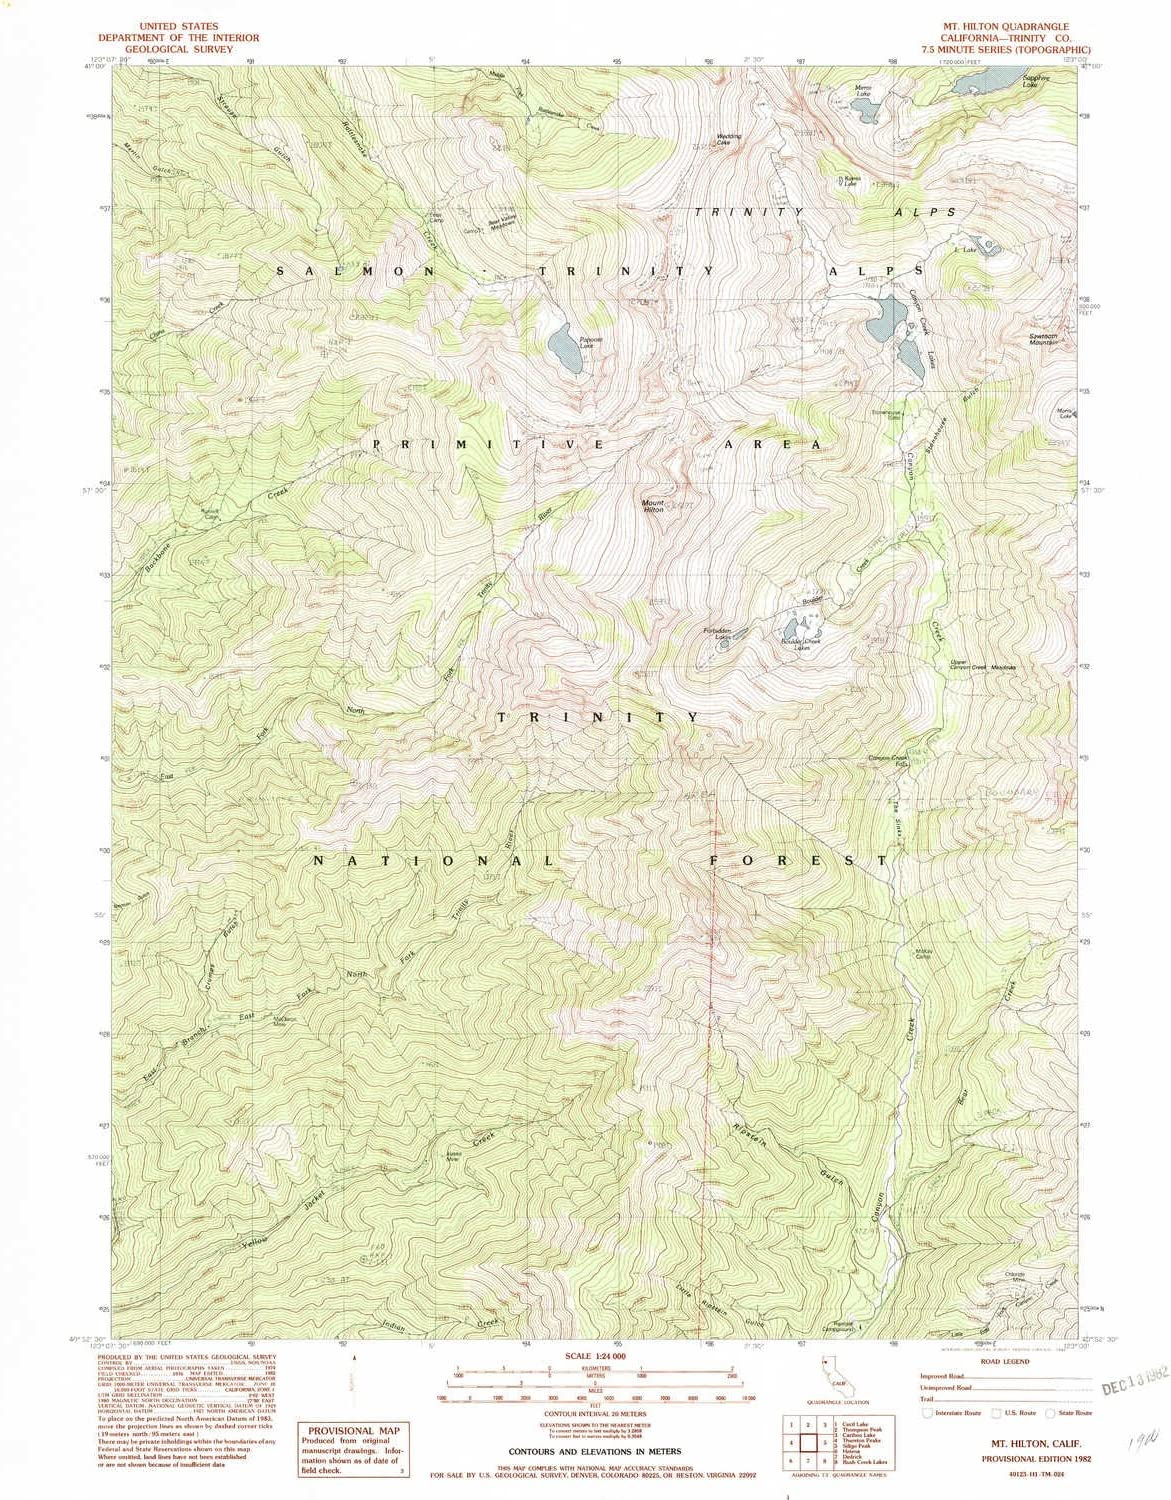 Updated 1982 YellowMaps Mt Hilton CA topo map Historical 26.8 x 22 in 7.5 X 7.5 Minute 1:24000 Scale 1982